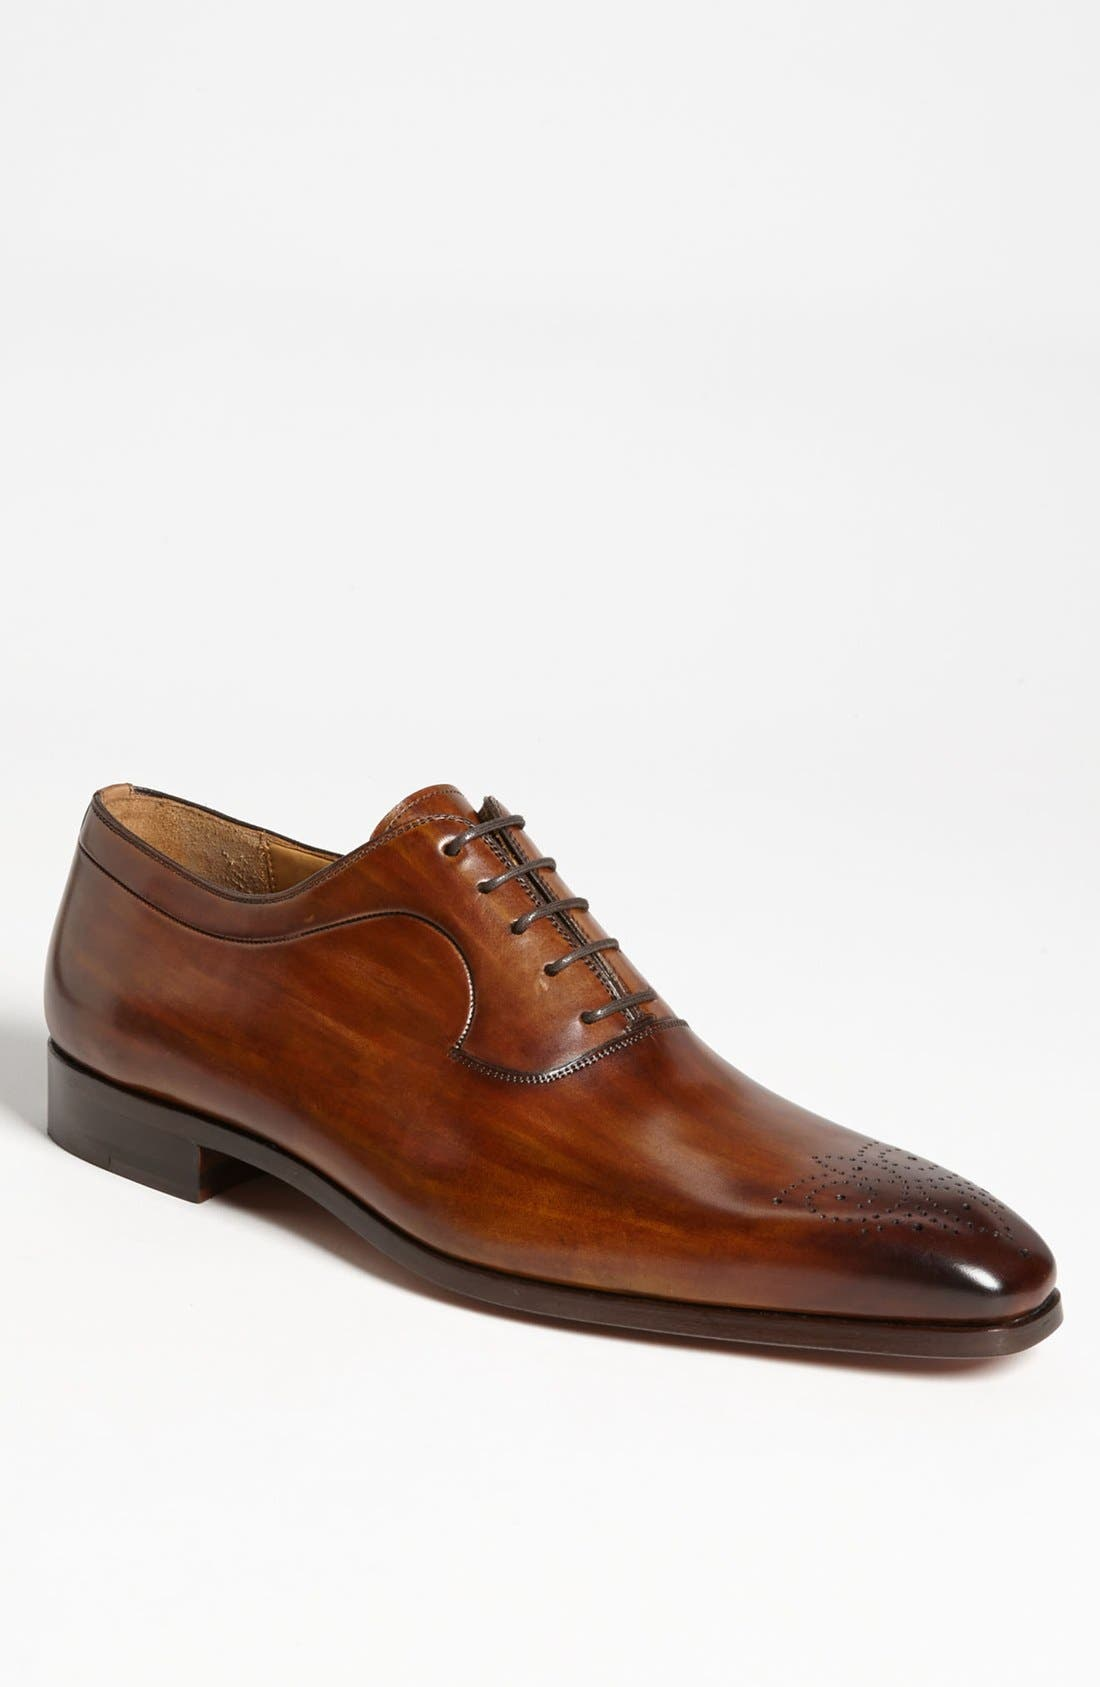 Main Image - Magnanni 'Astil' Oxford